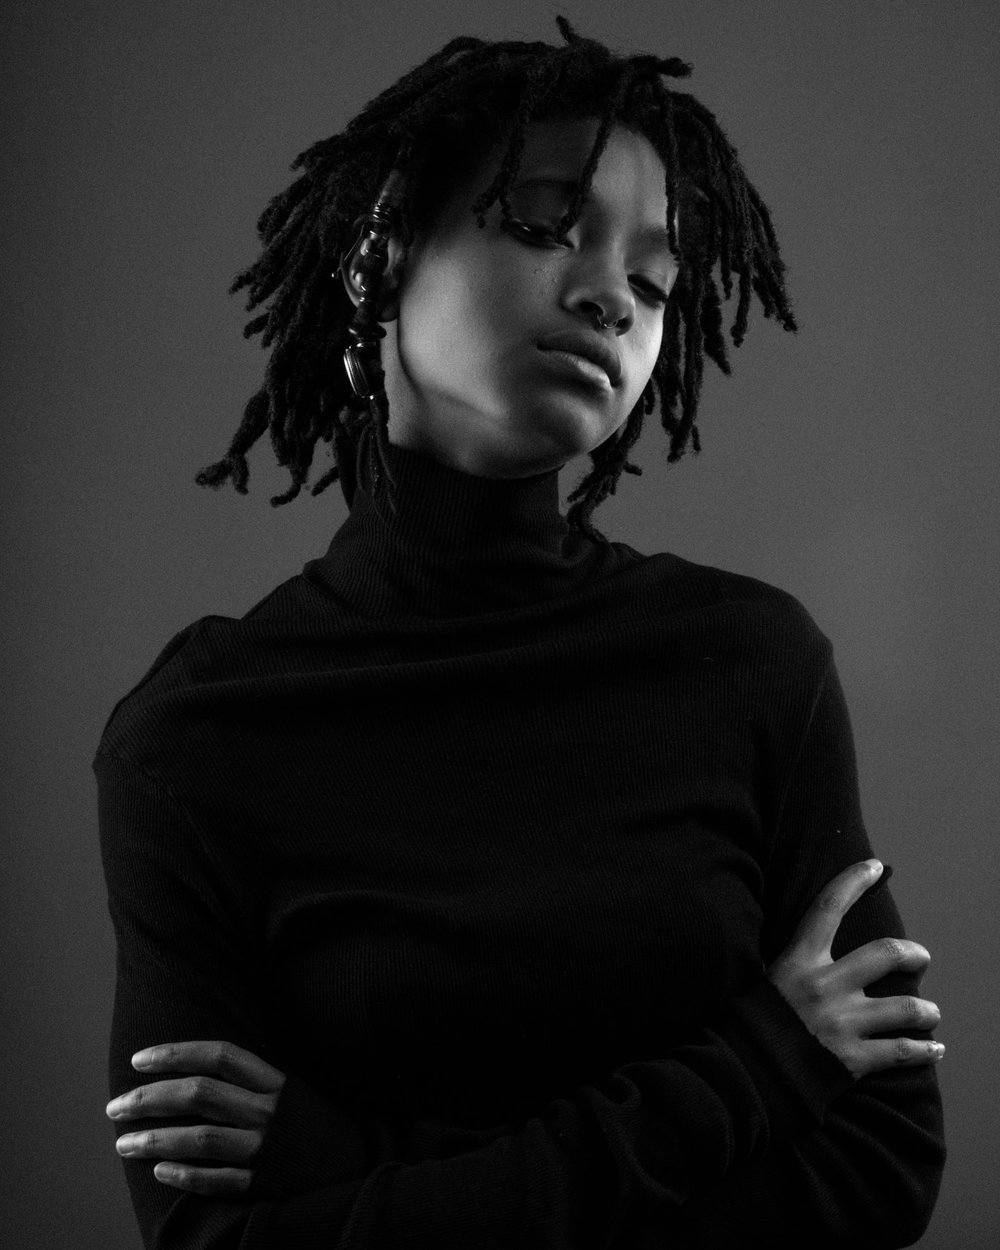 willowsmith-jackmckain3.jpg